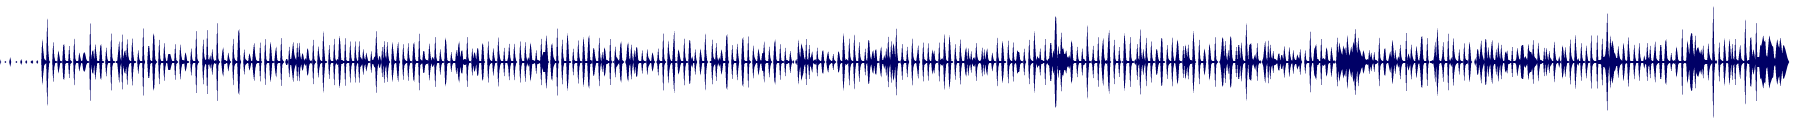 waveform of track #71335